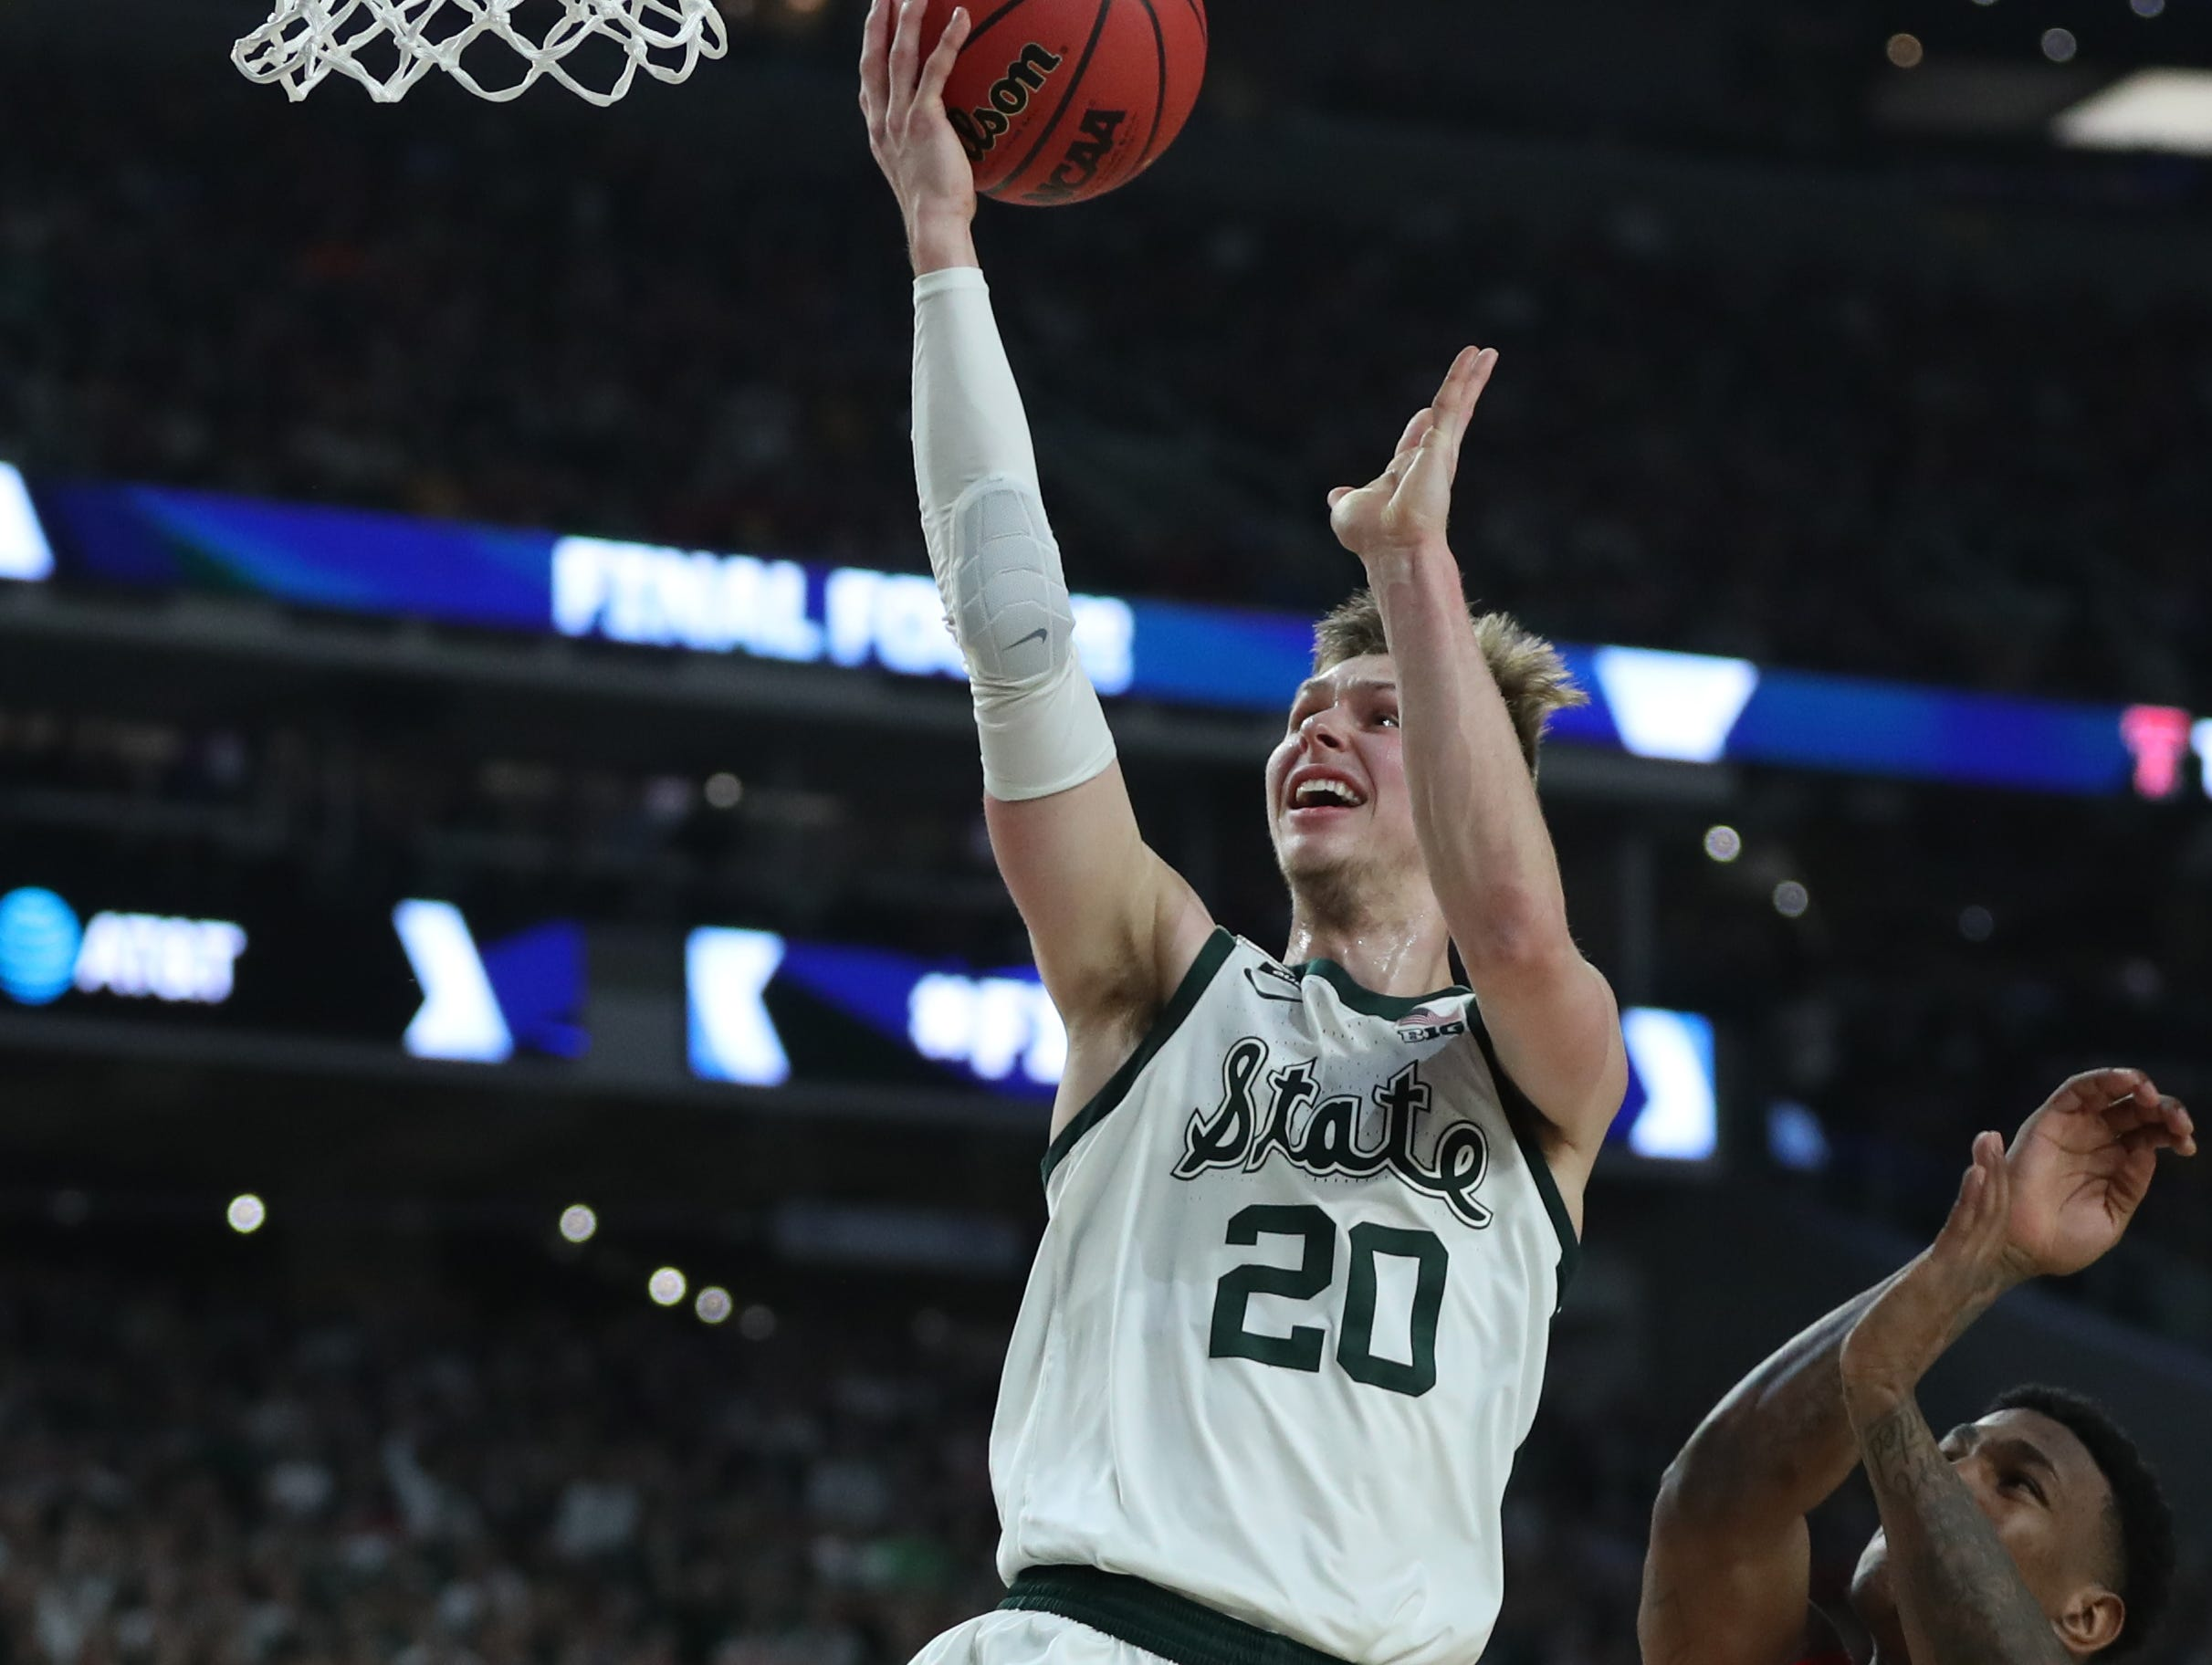 Michigan State guard Matt McQuaid (20) looks for a basket around Texas Tech forward Deshawn Corprew (3) in the first half of the Spartan's Final Four game at U.S. Bank Stadium in Minneapolis, Minnesota on Saturday, April 06, 2019.